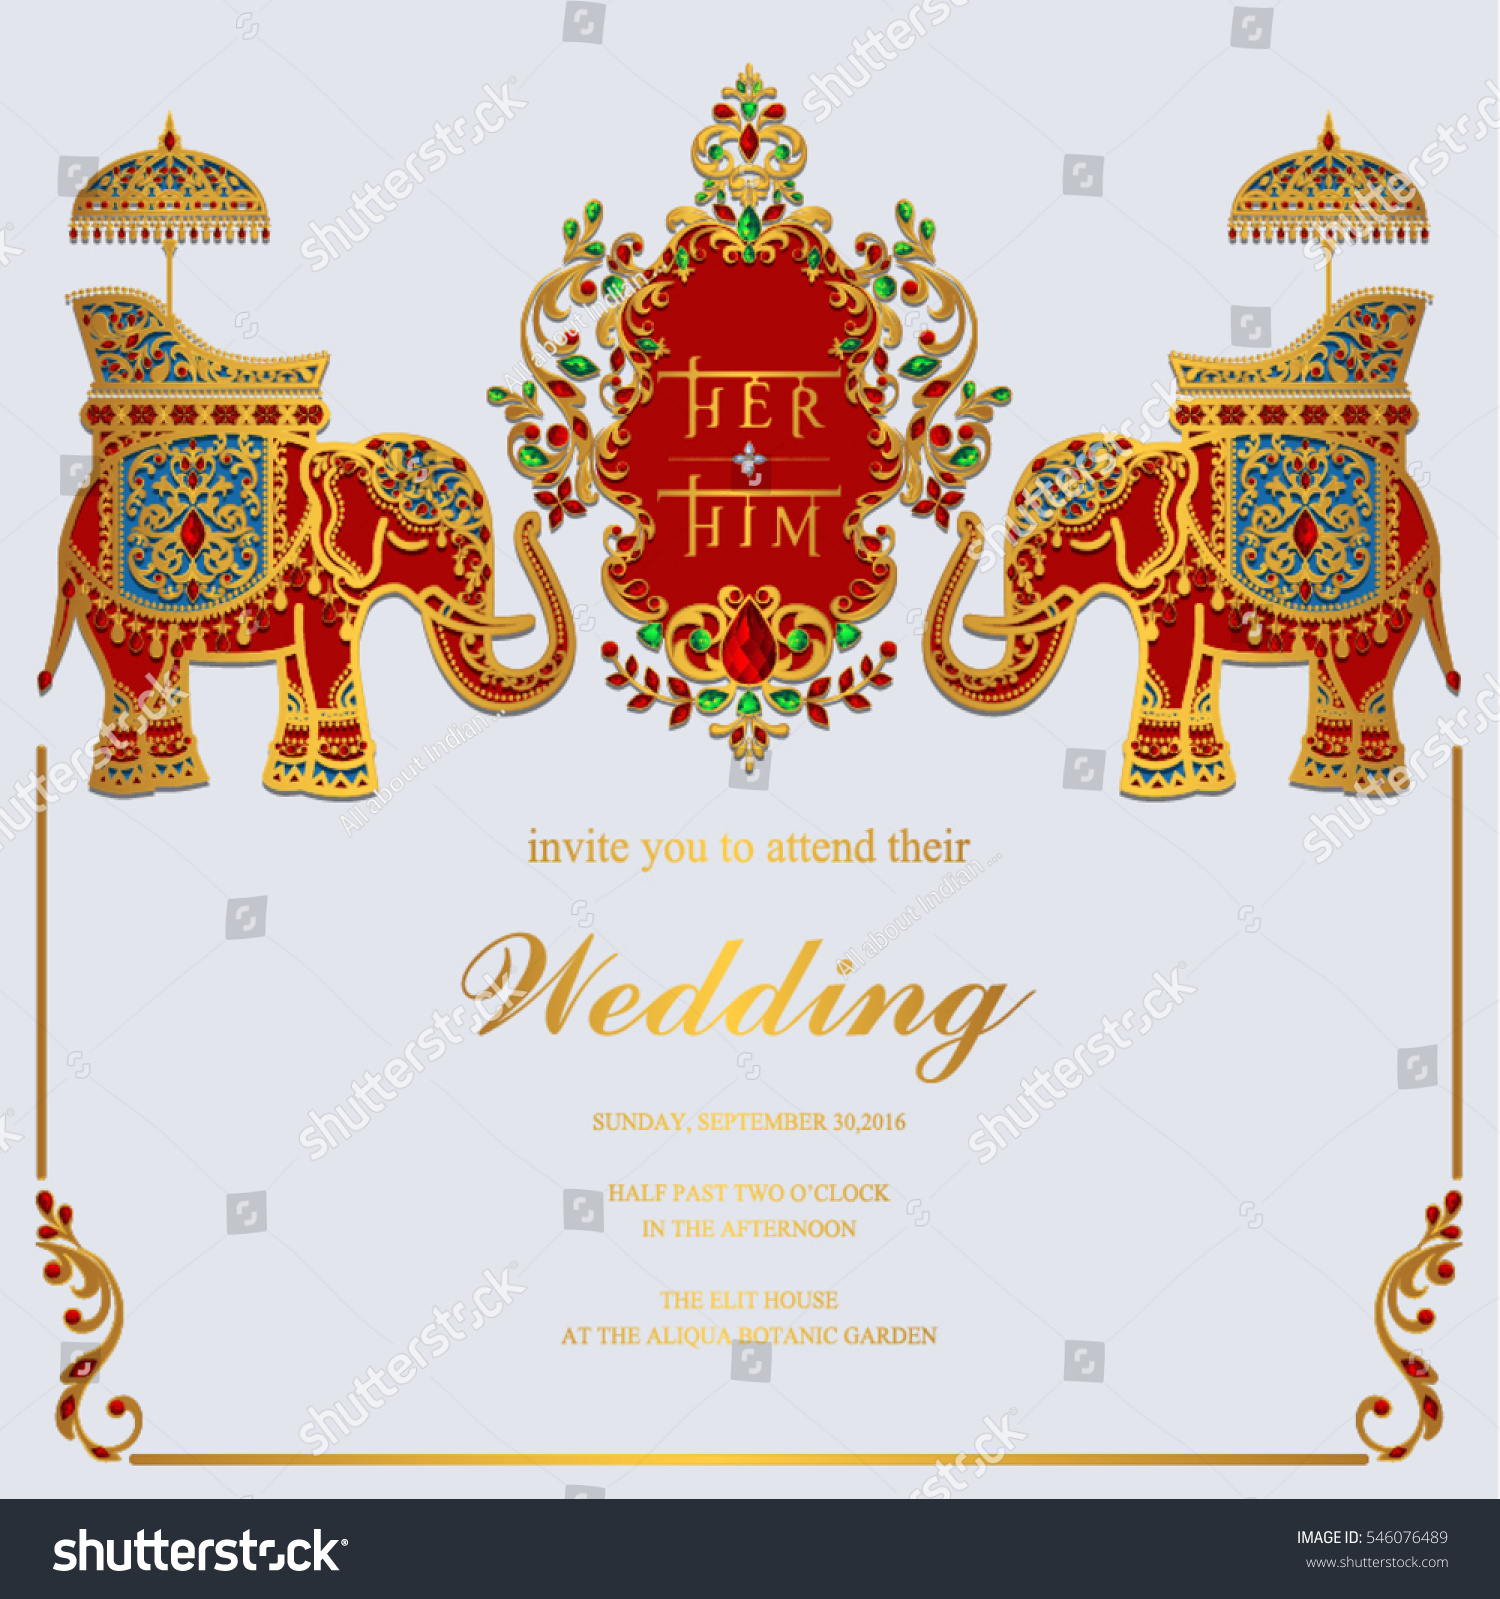 Elephant Png For Wedding : Indian elephant film african elephant videographer wedding, wedding elephant png.